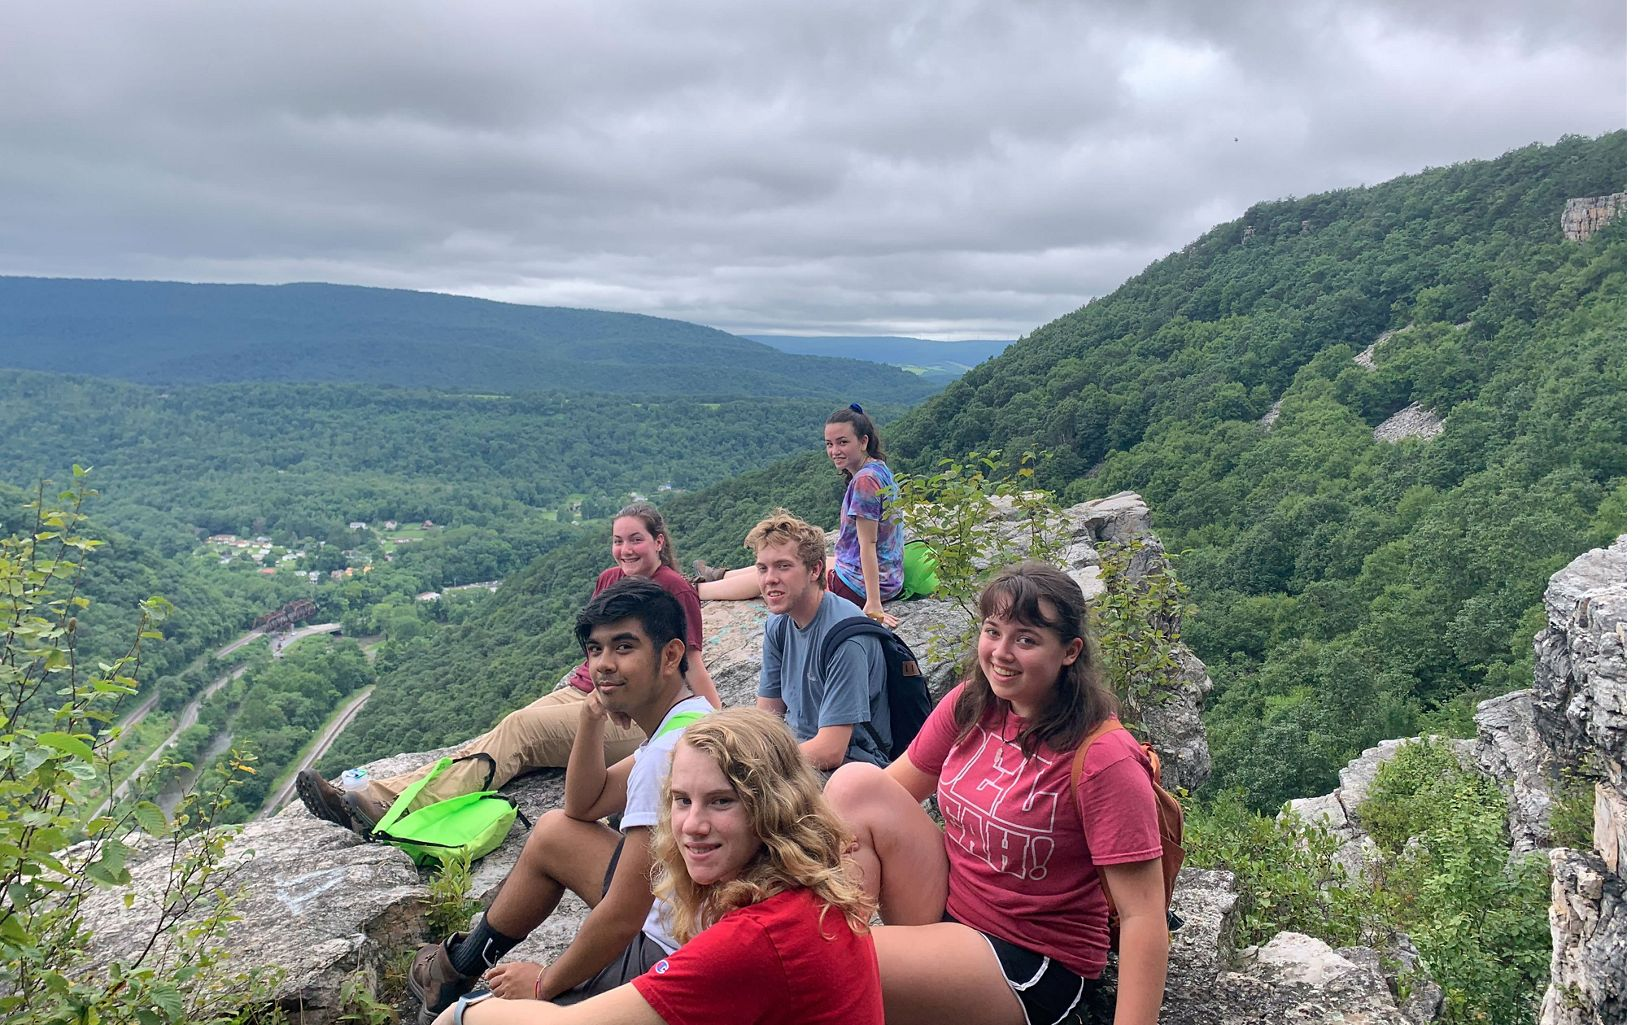 2019 LEAF interns at Wills Mountain. The students were selected from high schools in Allegany and Garrett Counties and worked with staff from the Resilient Forests Program.